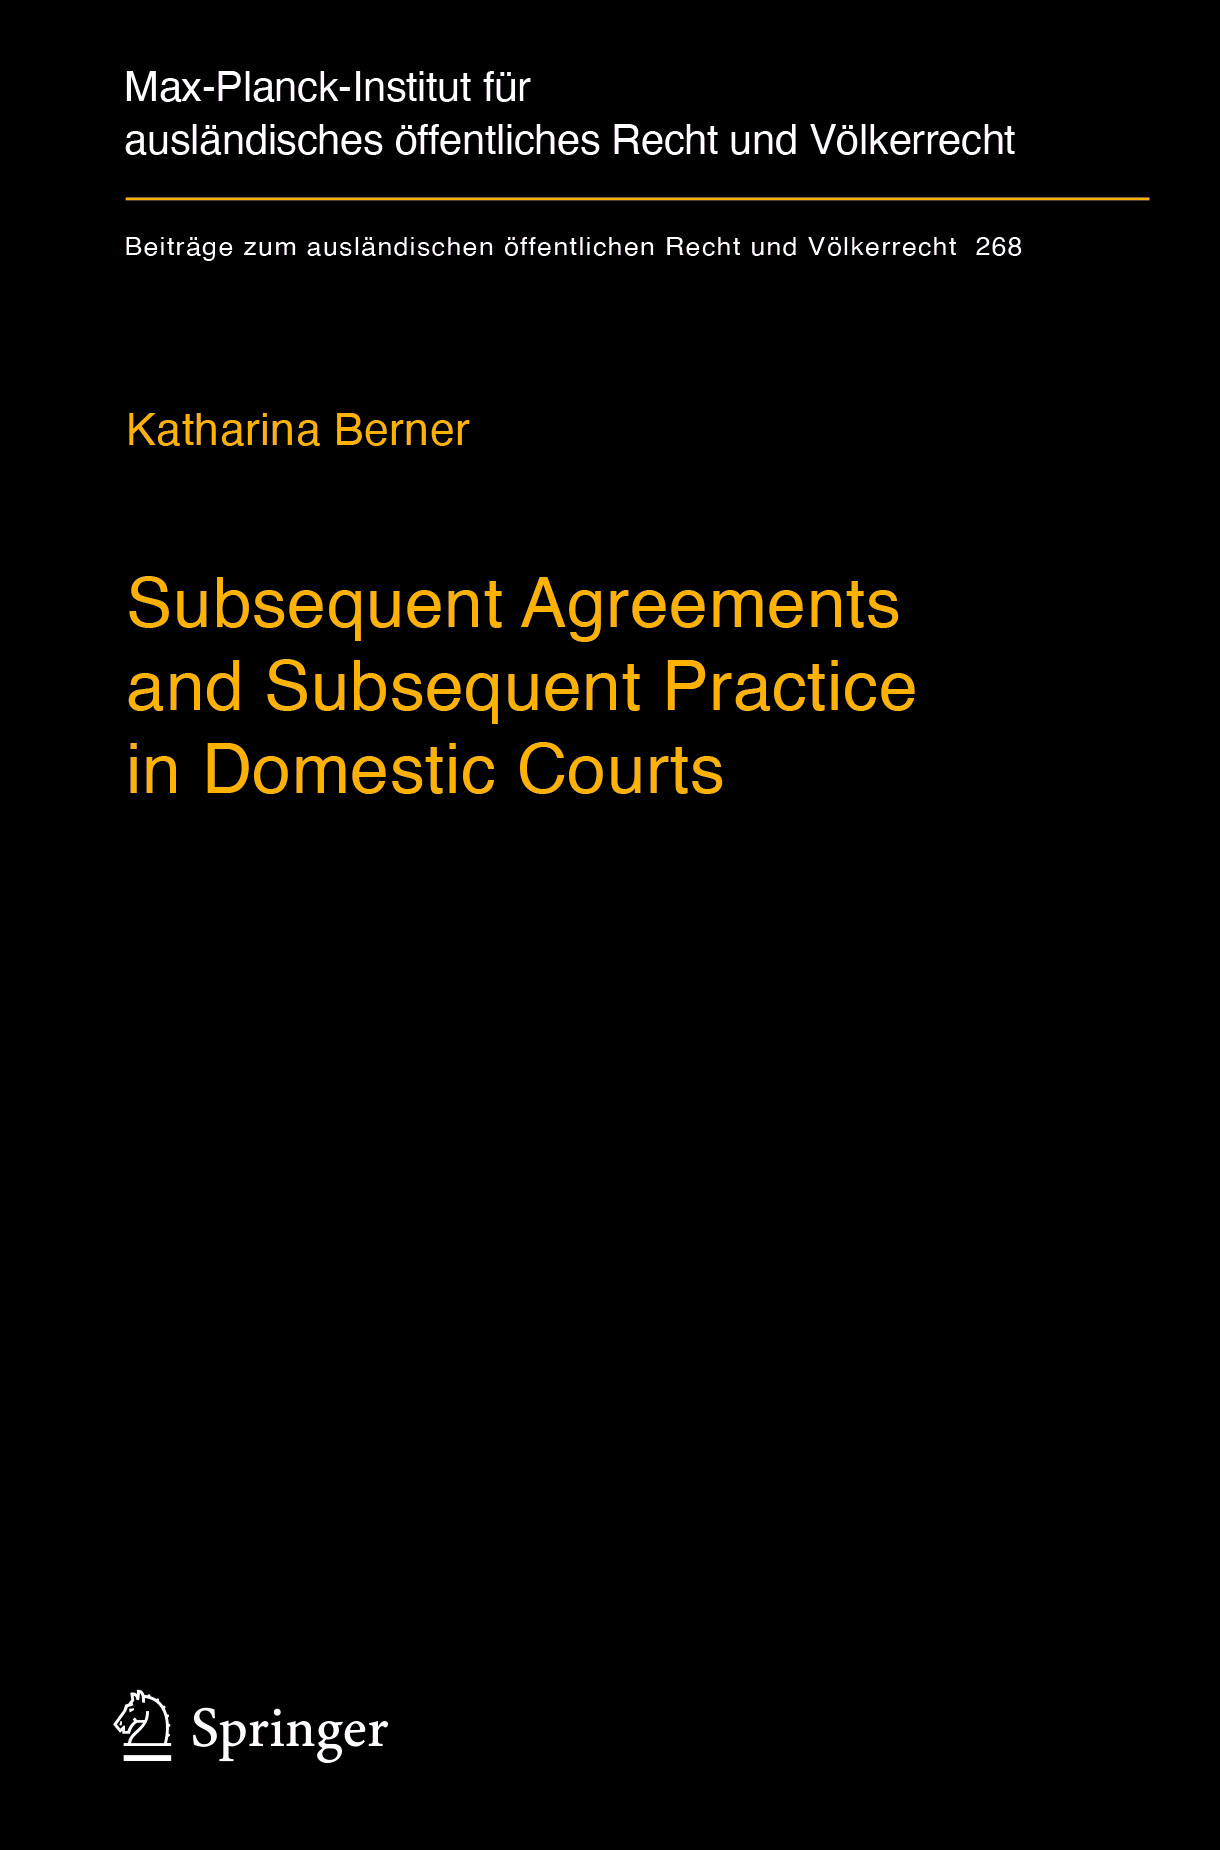 Berner, Katharina - Subsequent Agreements and Subsequent Practice in Domestic Courts, ebook